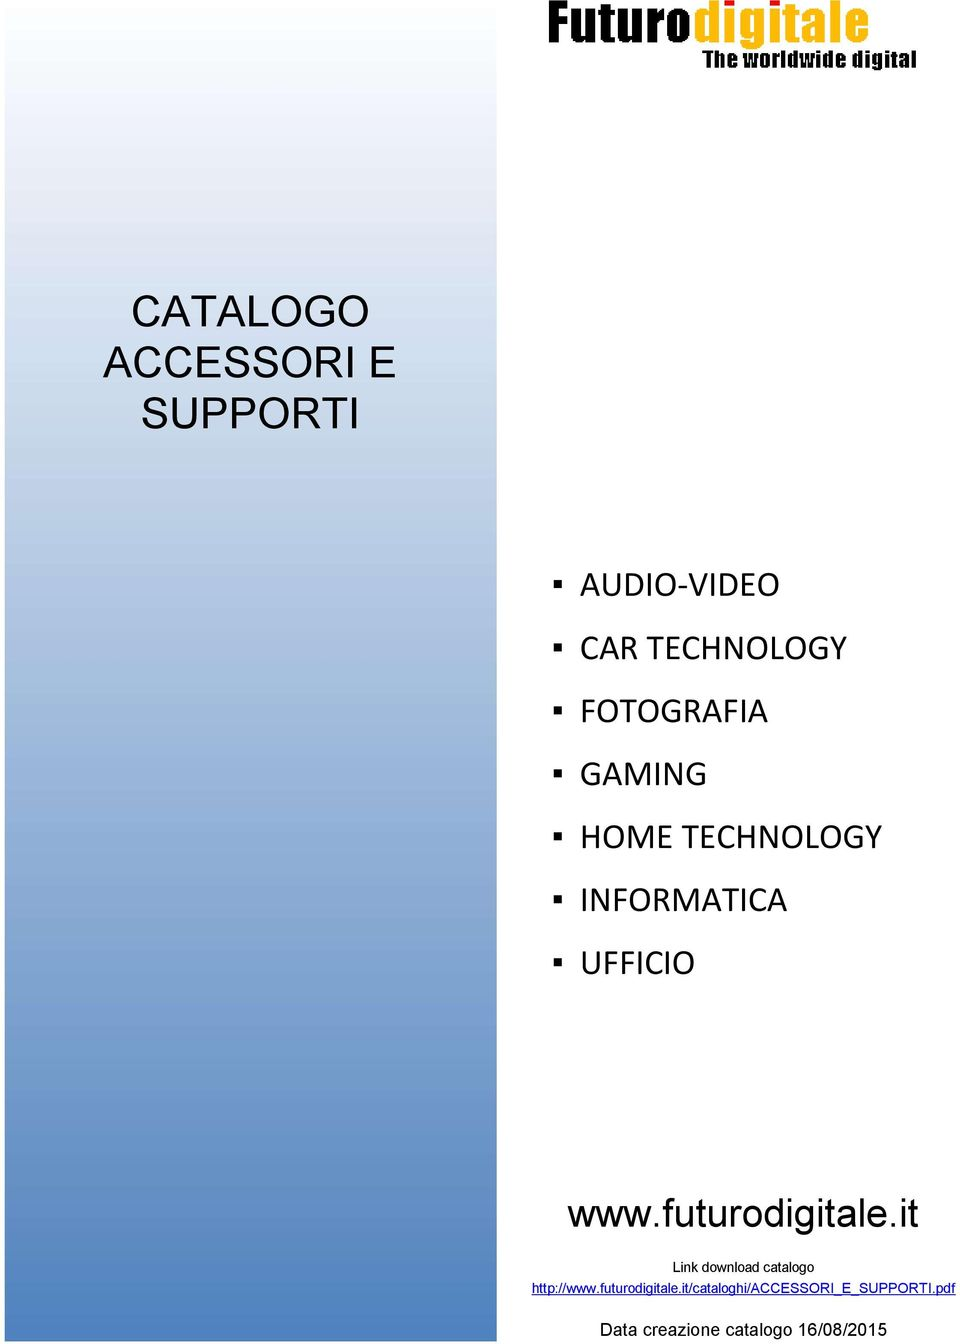 futurodigitale.it Link download catalogo http://www.